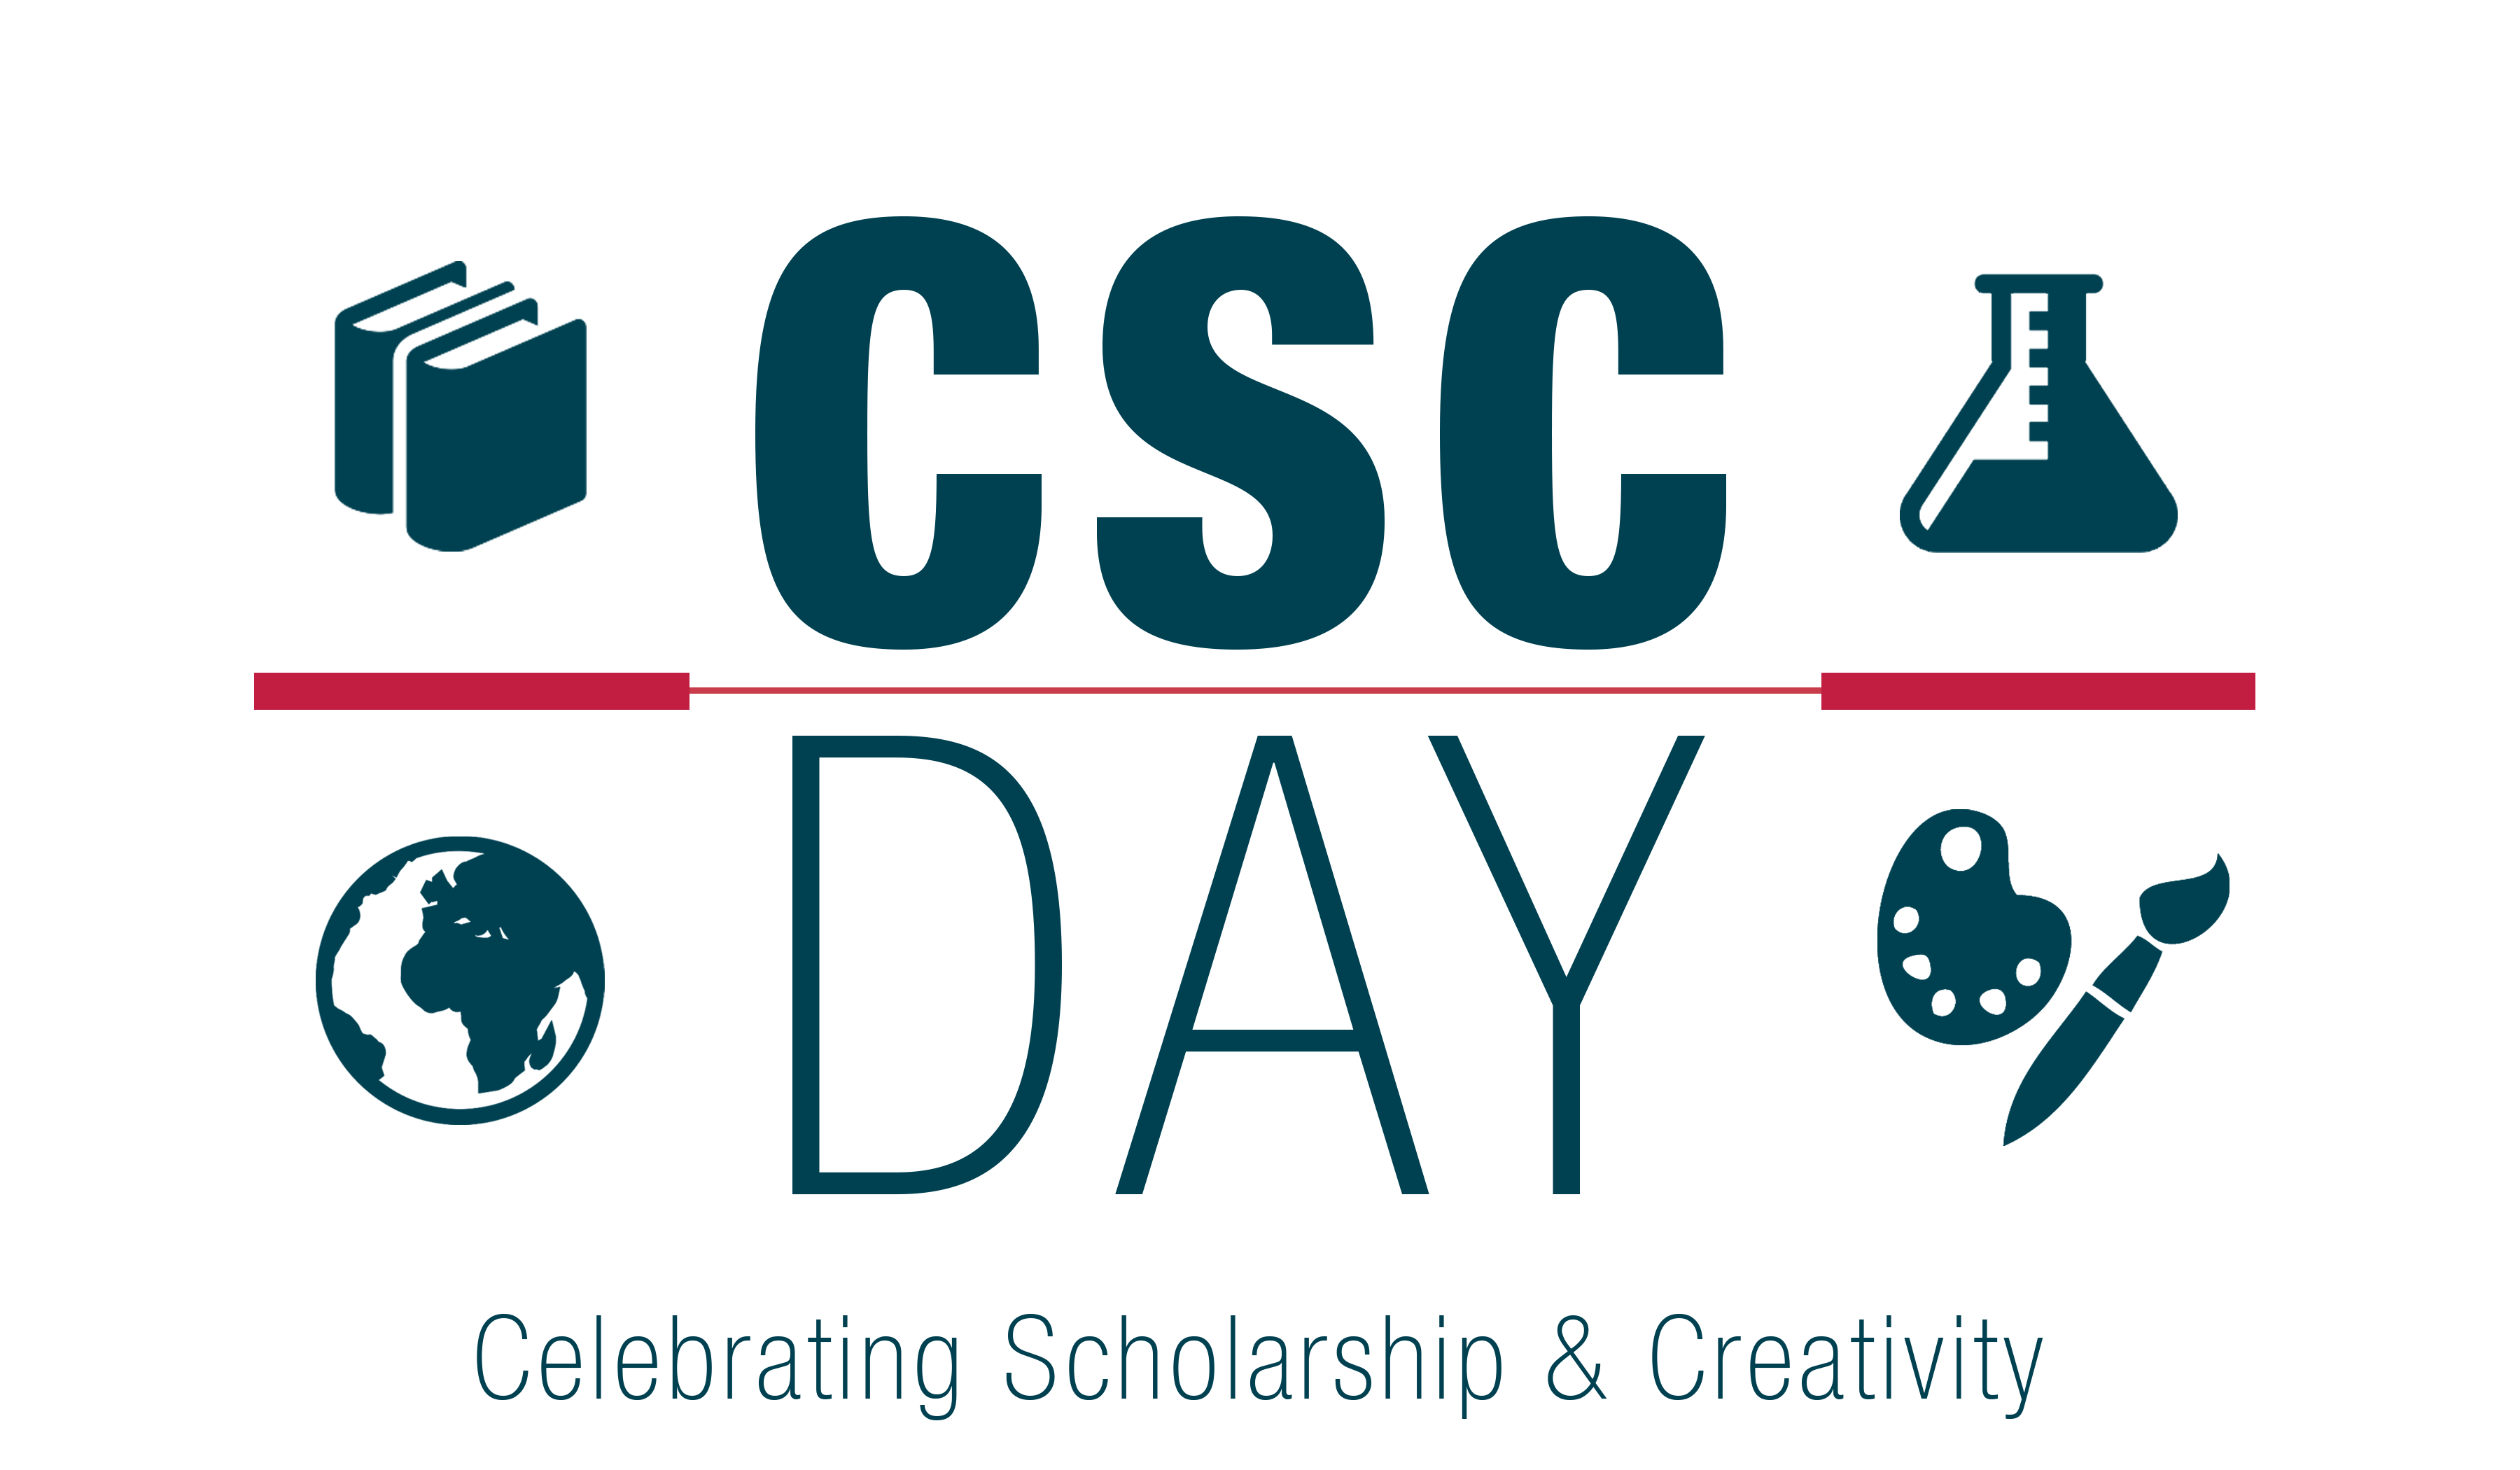 2000 no essay college scholarship Enter for the chance to win $2,000 college scholarship 10 available applicant eligibility requirements the high school senior college scholarship contest is open to high school seniors who are citizens or aliens legally residing in the usa.